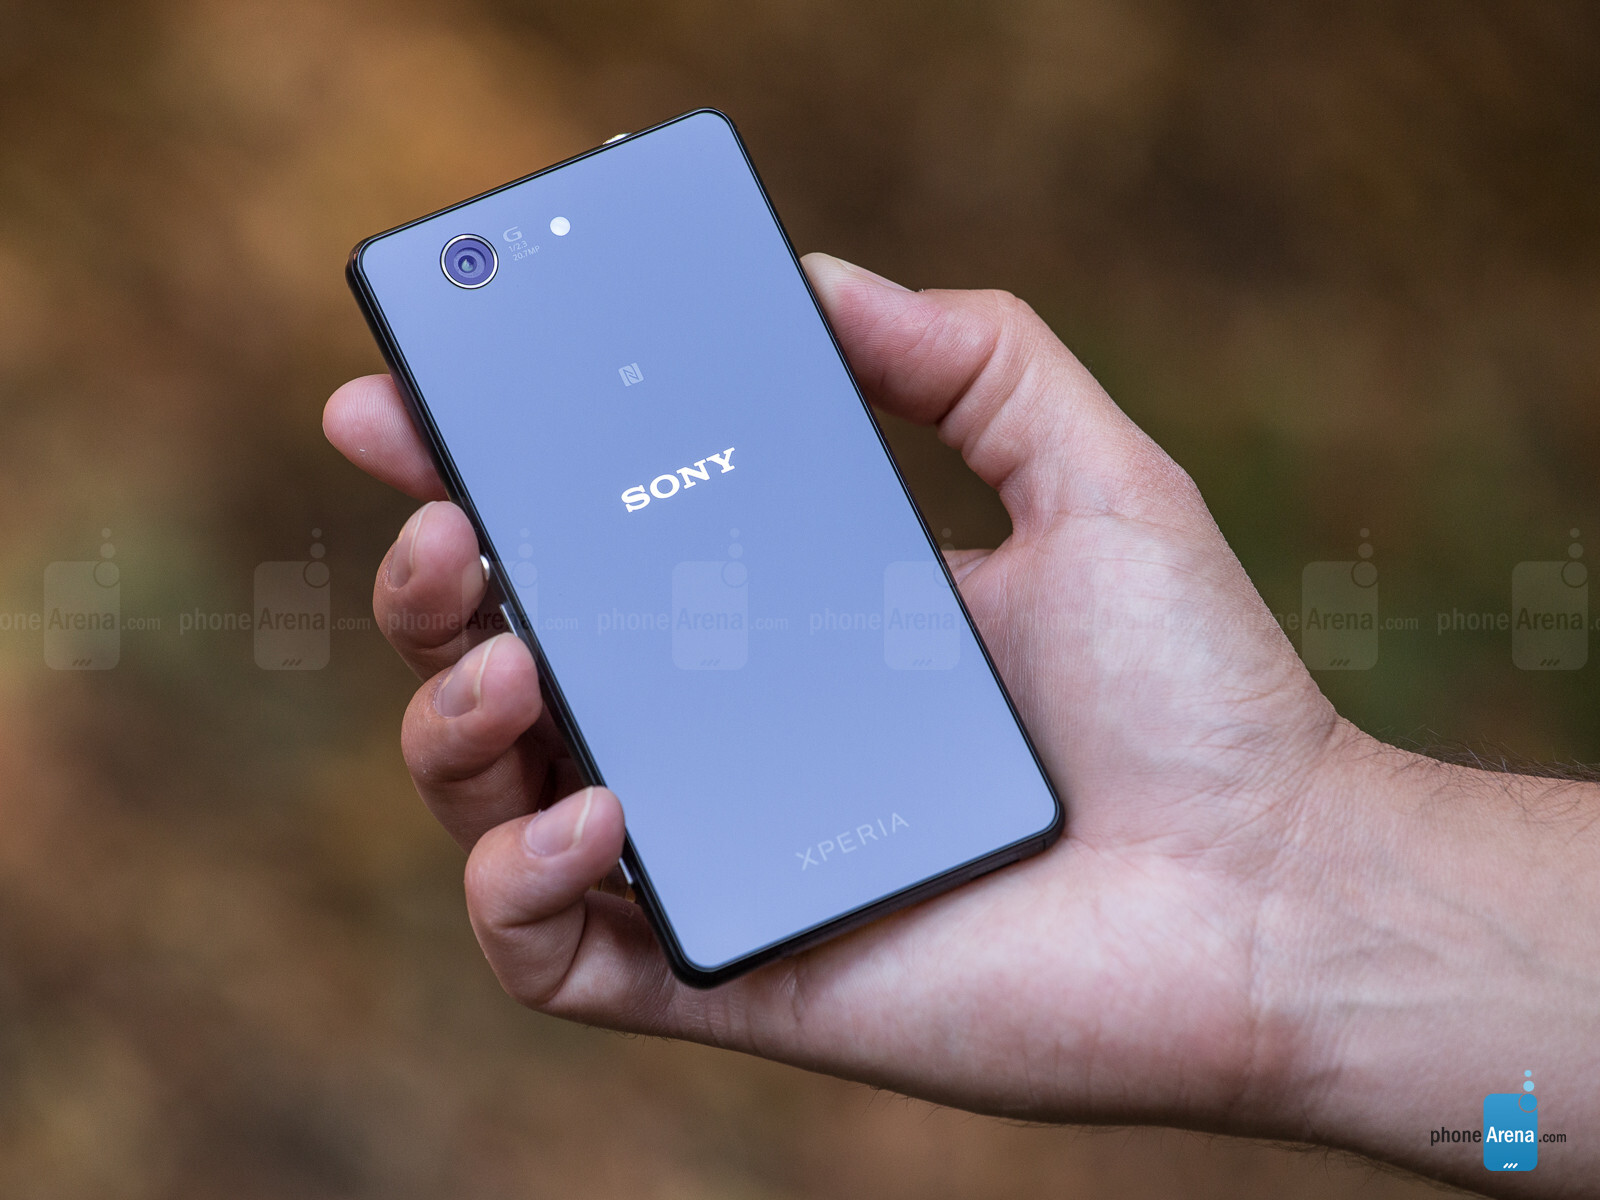 Sony Xperia Z1 Compact Review: Muscle Cell in the Compact Class [Mobile Test]